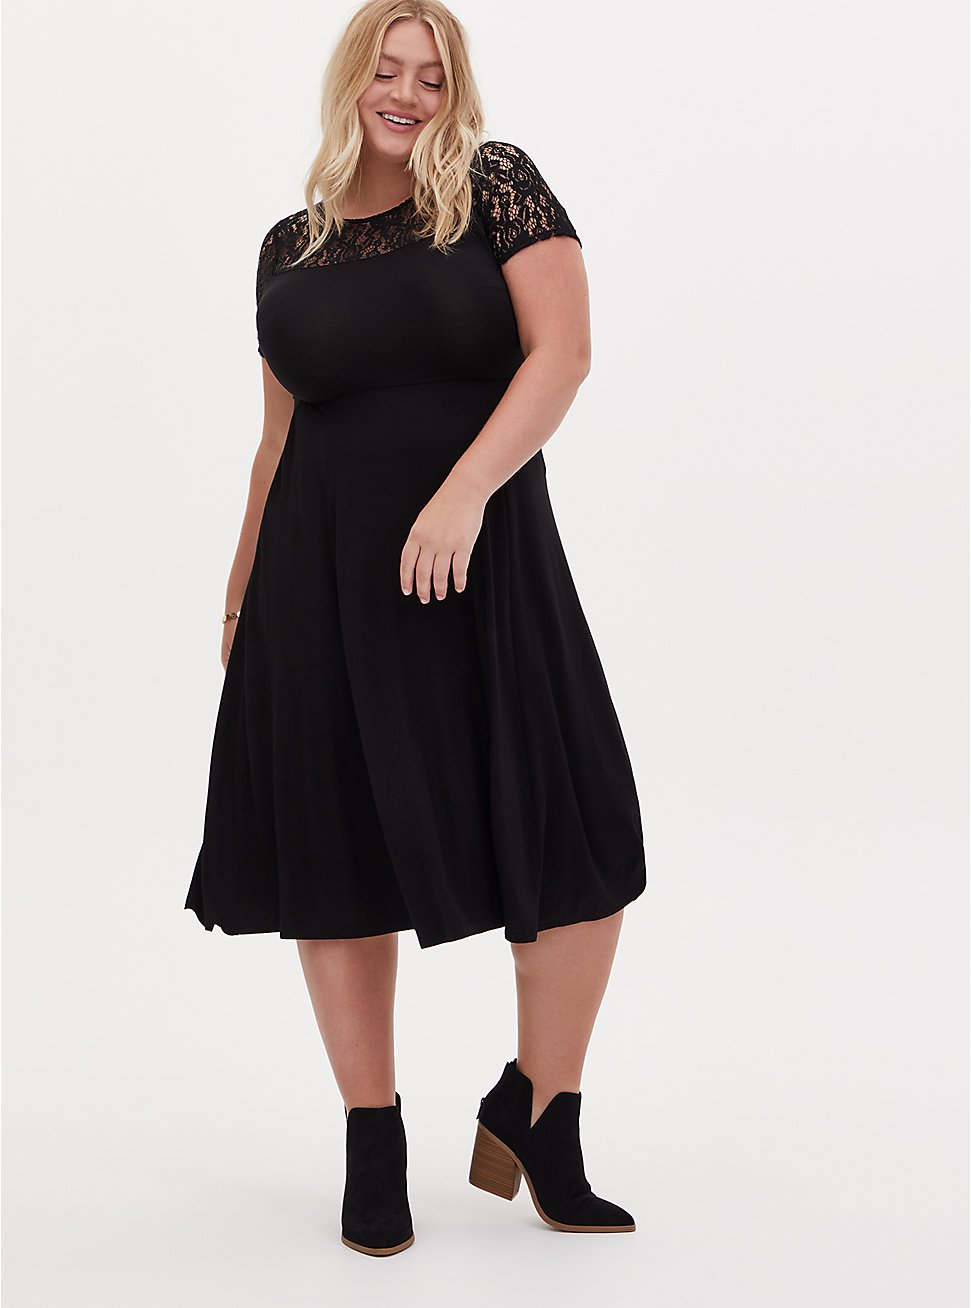 Super Soft Black Lace Inset Midi Dress, DOT -BLACK, hi-res